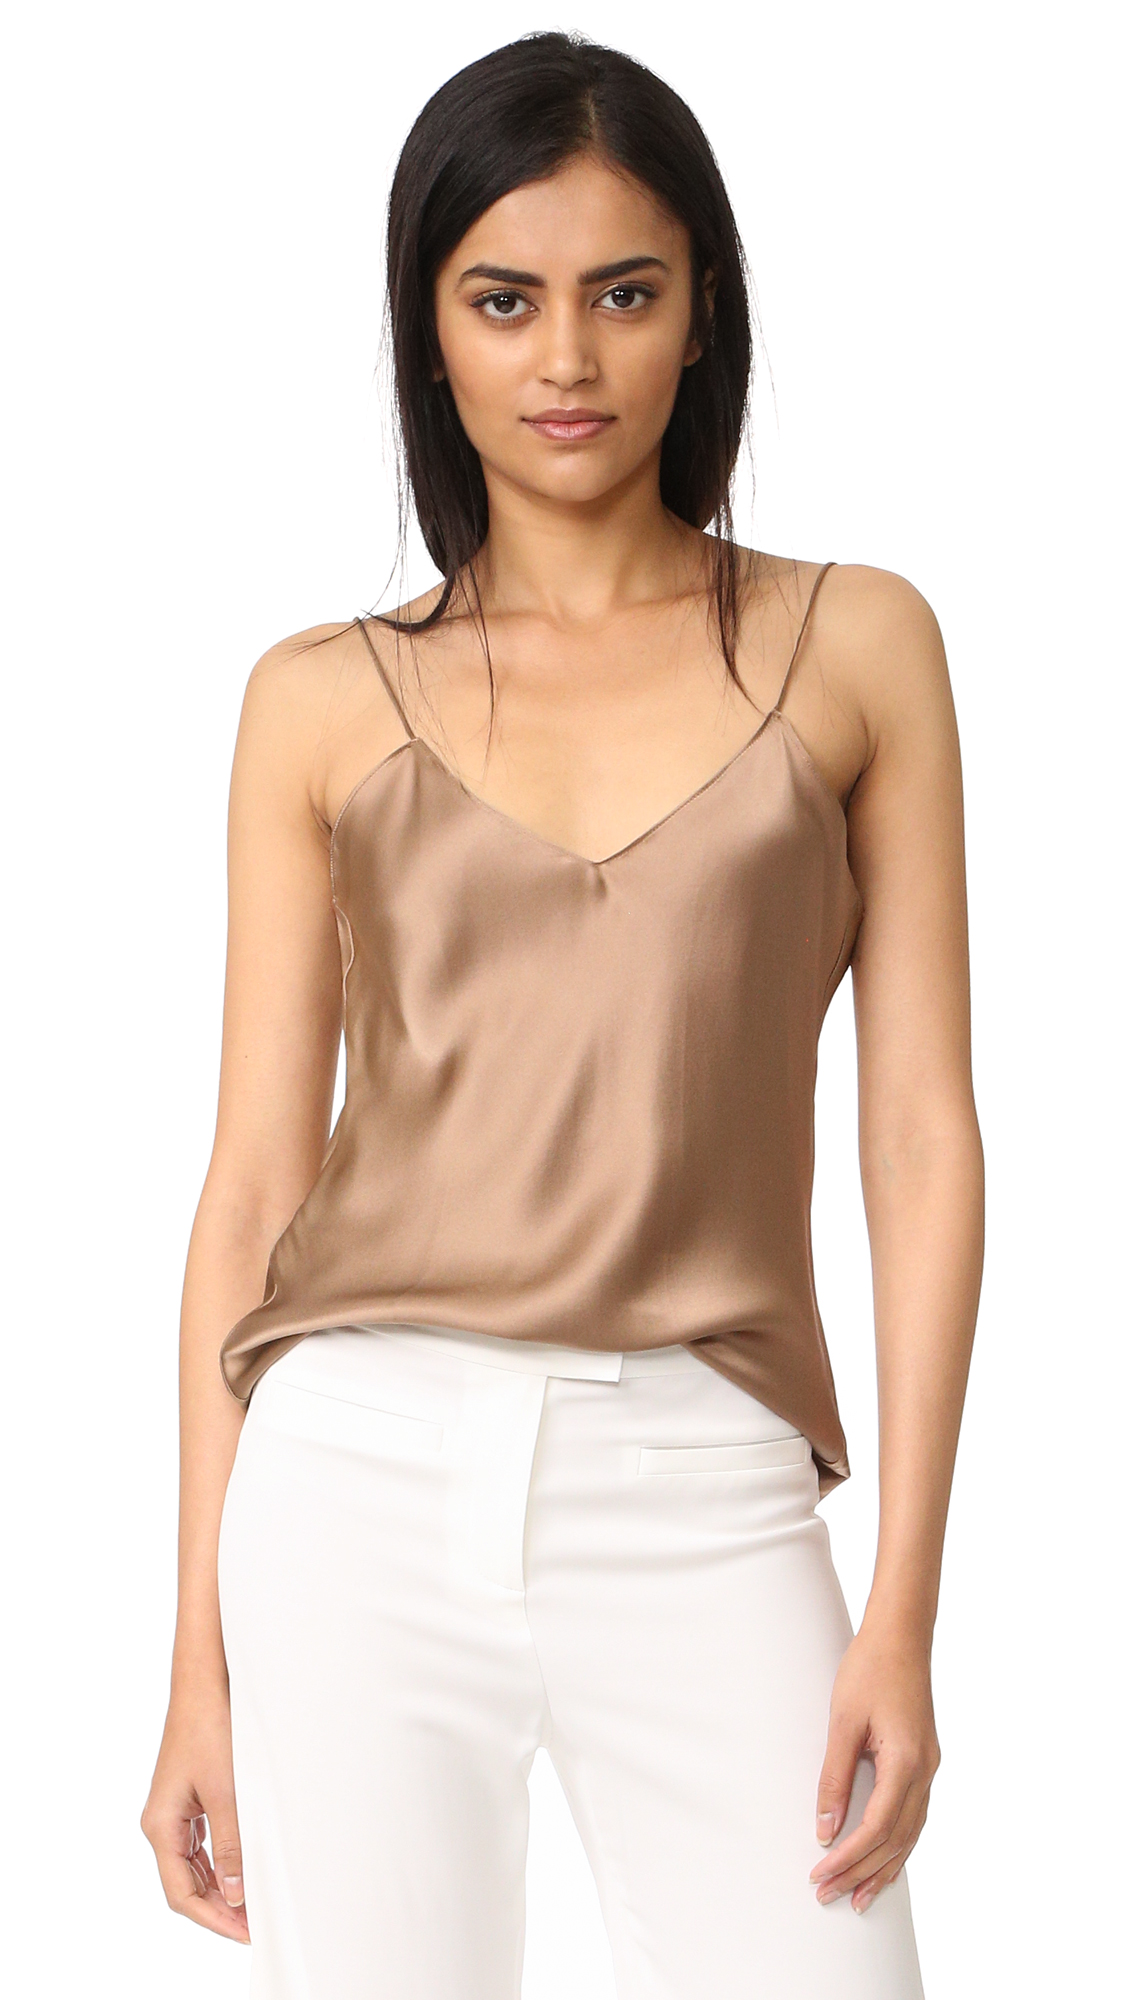 Emerson Thorpe Fiora Silk Cami Top - Coffee